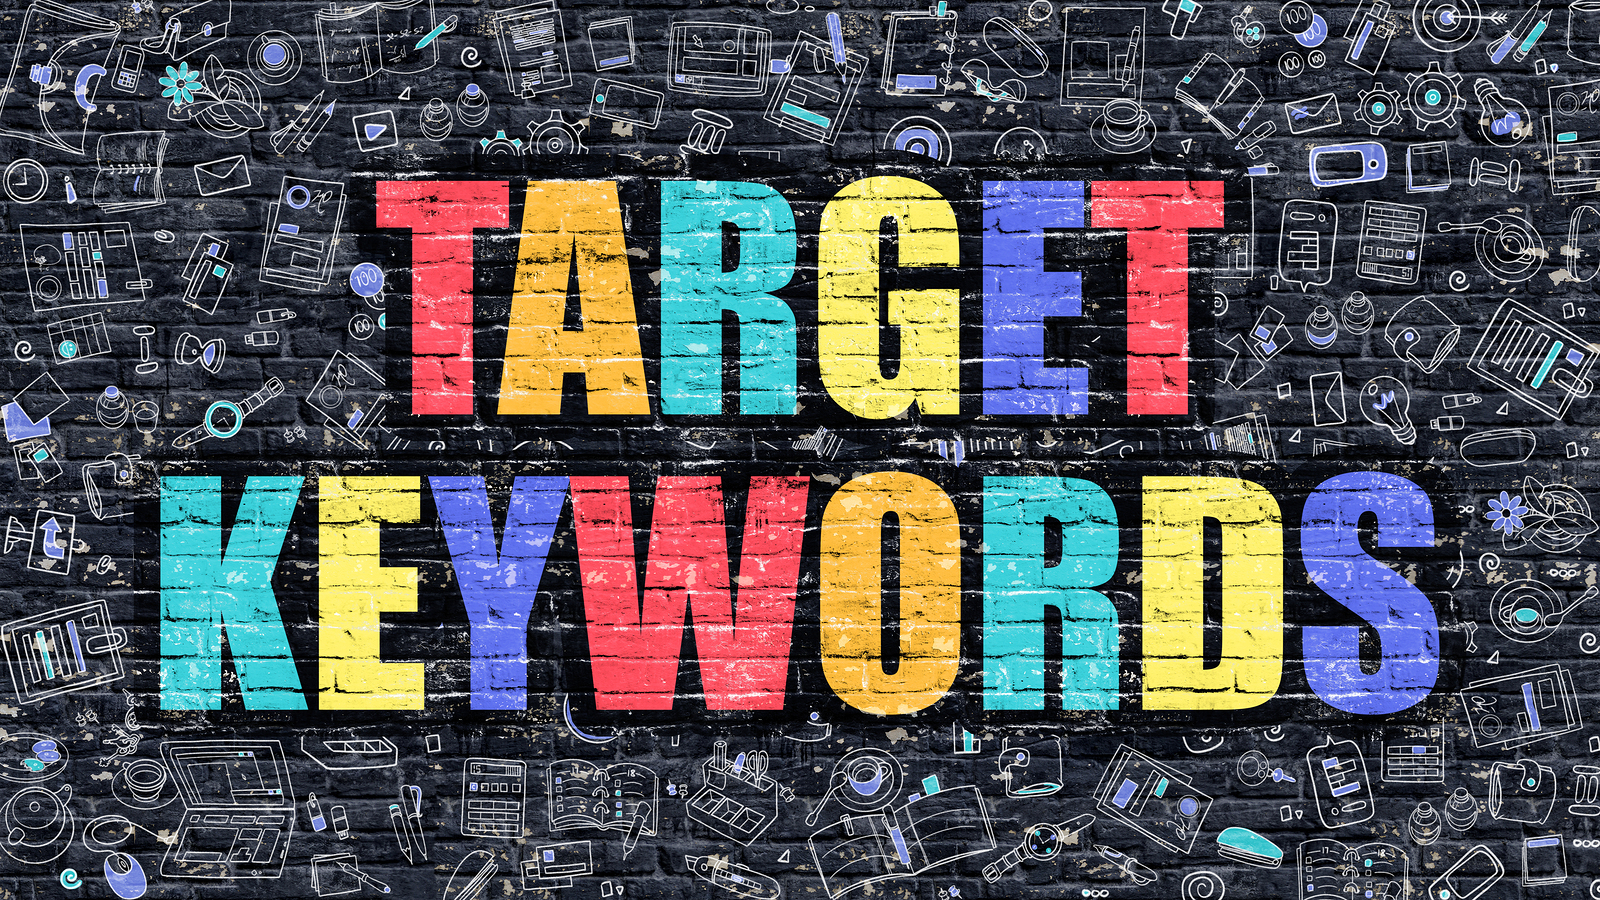 Target Long Tail Keywords To Improve Your Adword's ROI